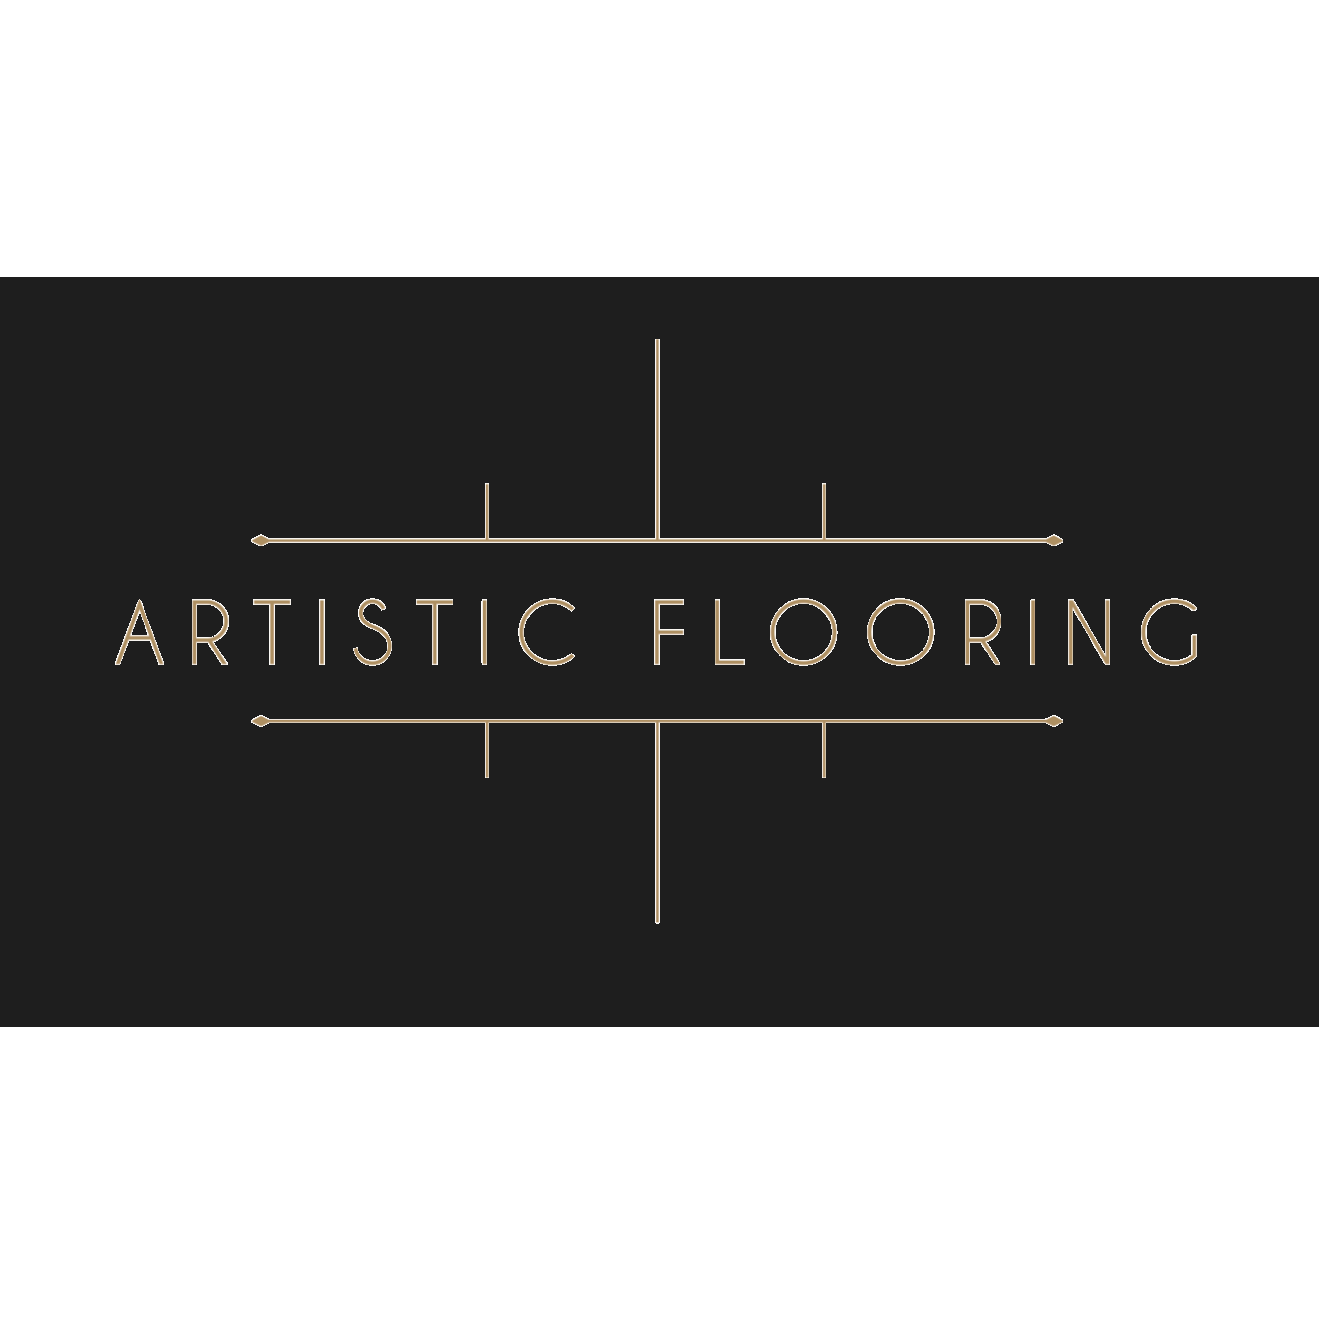 Artistic Flooring Coral Gables Fl Business Directory